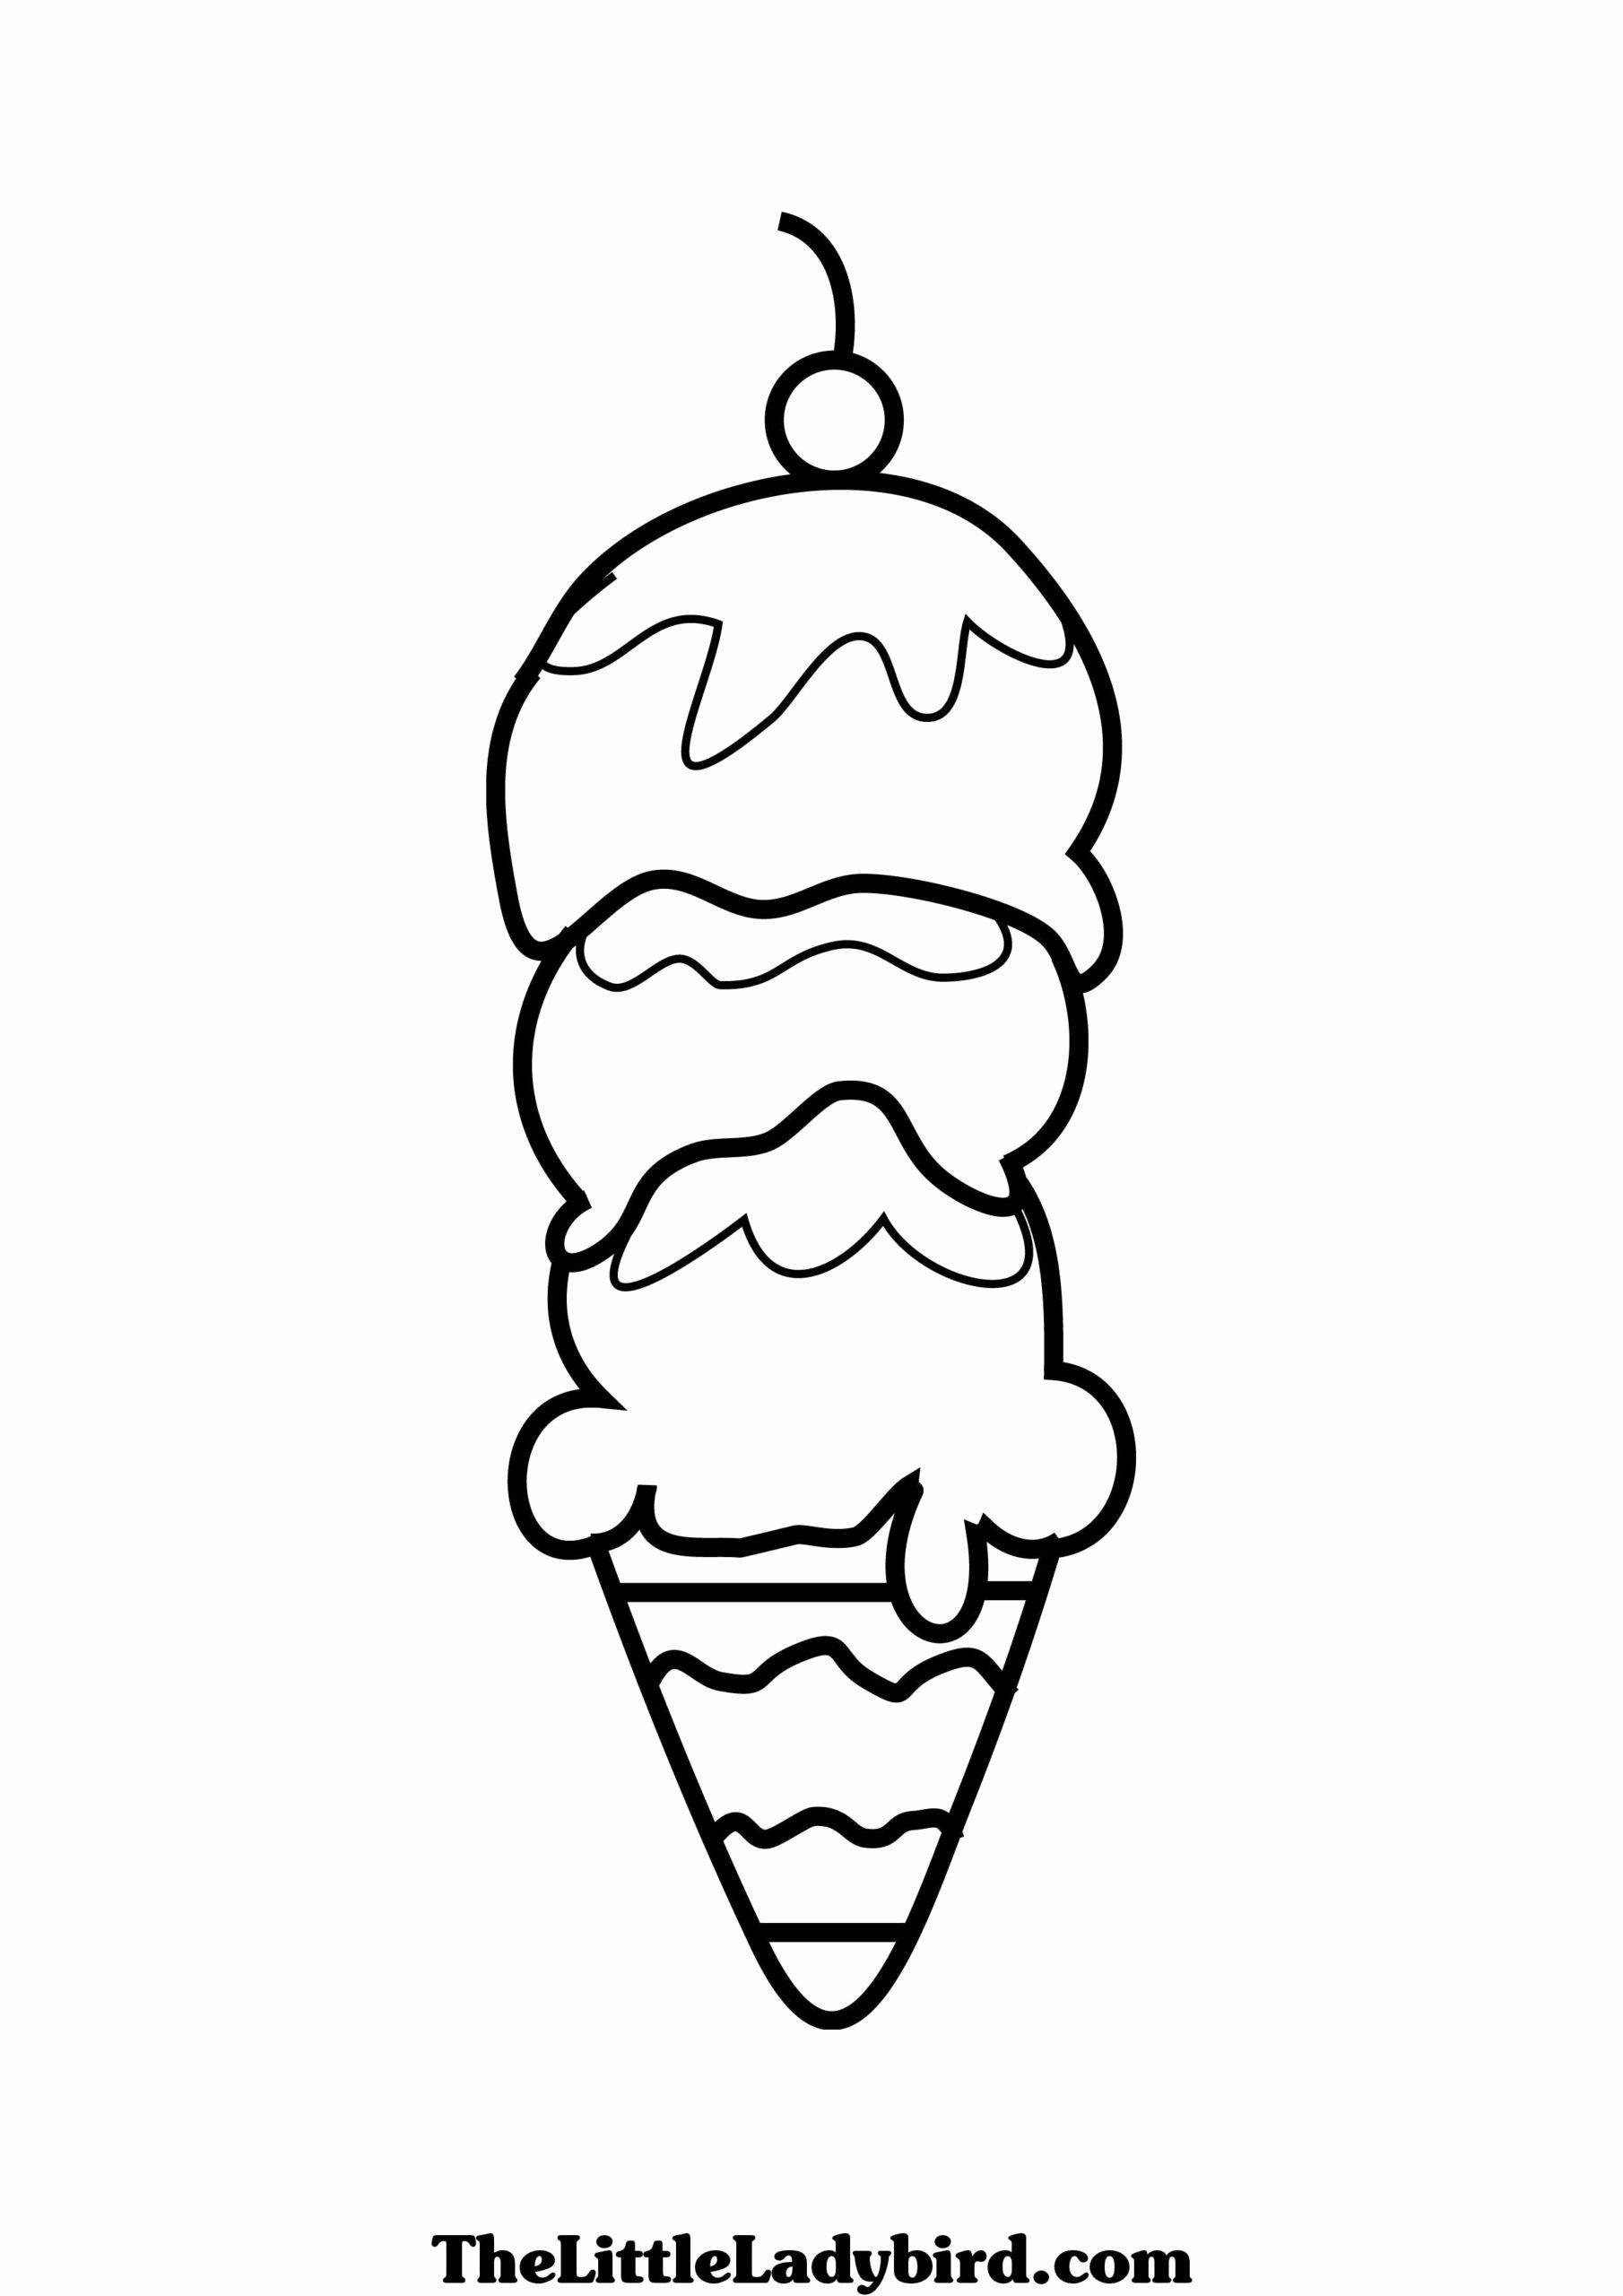 Printable Ice Cream Coloring Pages Luxury Coloring Pages Free Ice Cream Coloring Sheets In 2020 Ice Cream Coloring Pages Coloring Pages Flower Coloring Pages